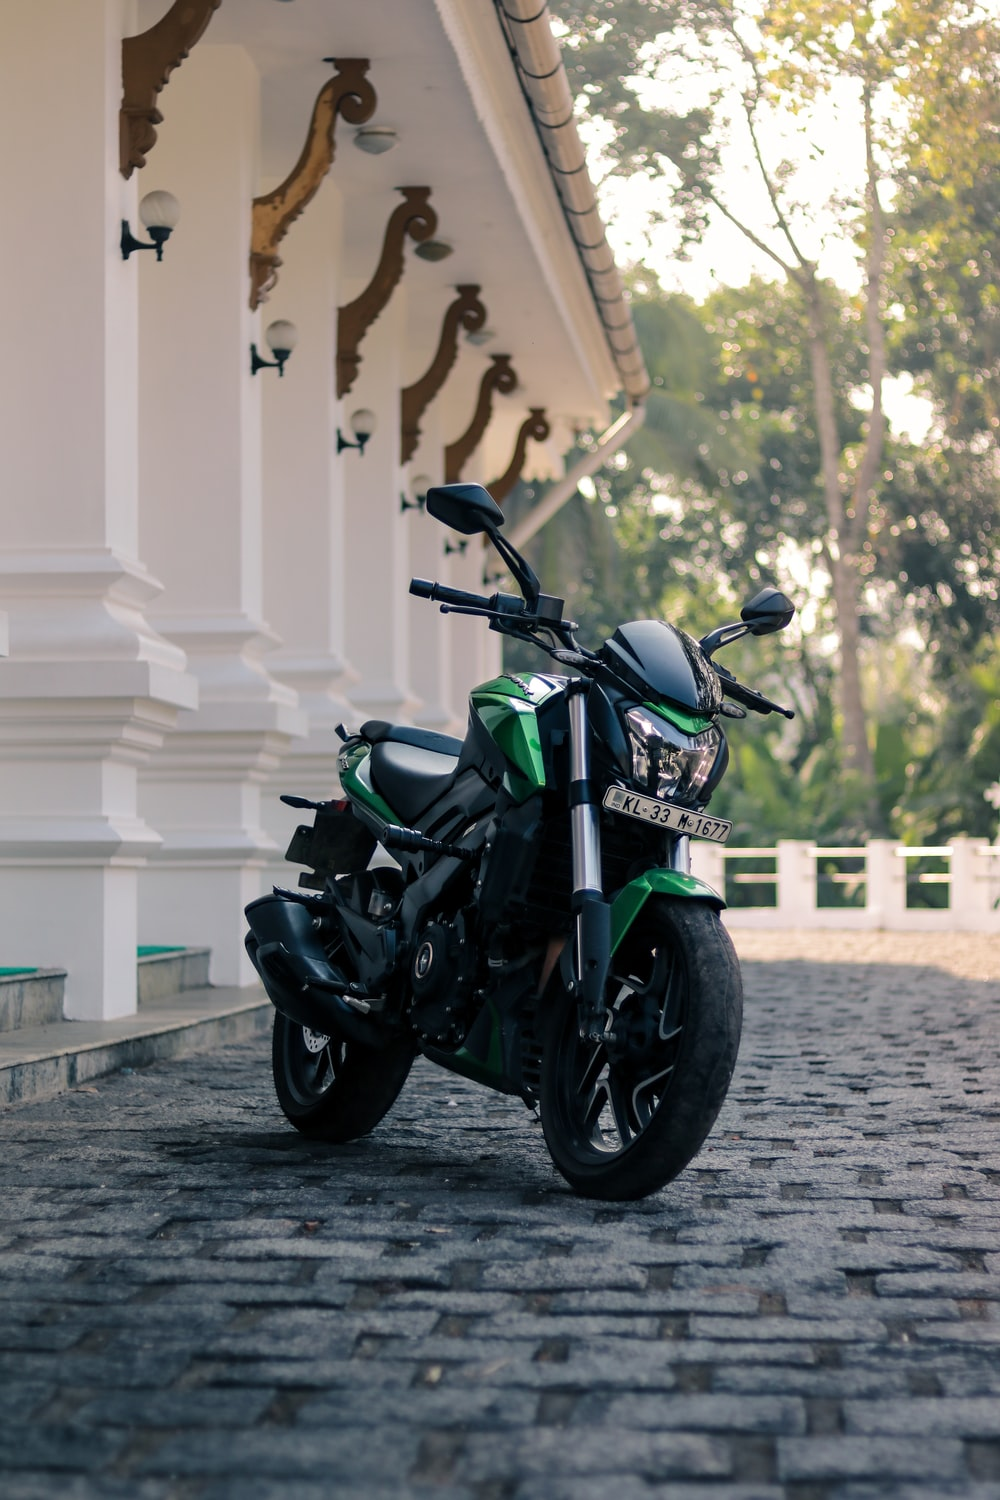 black and green naked motorcycle parked beside white building during daytime